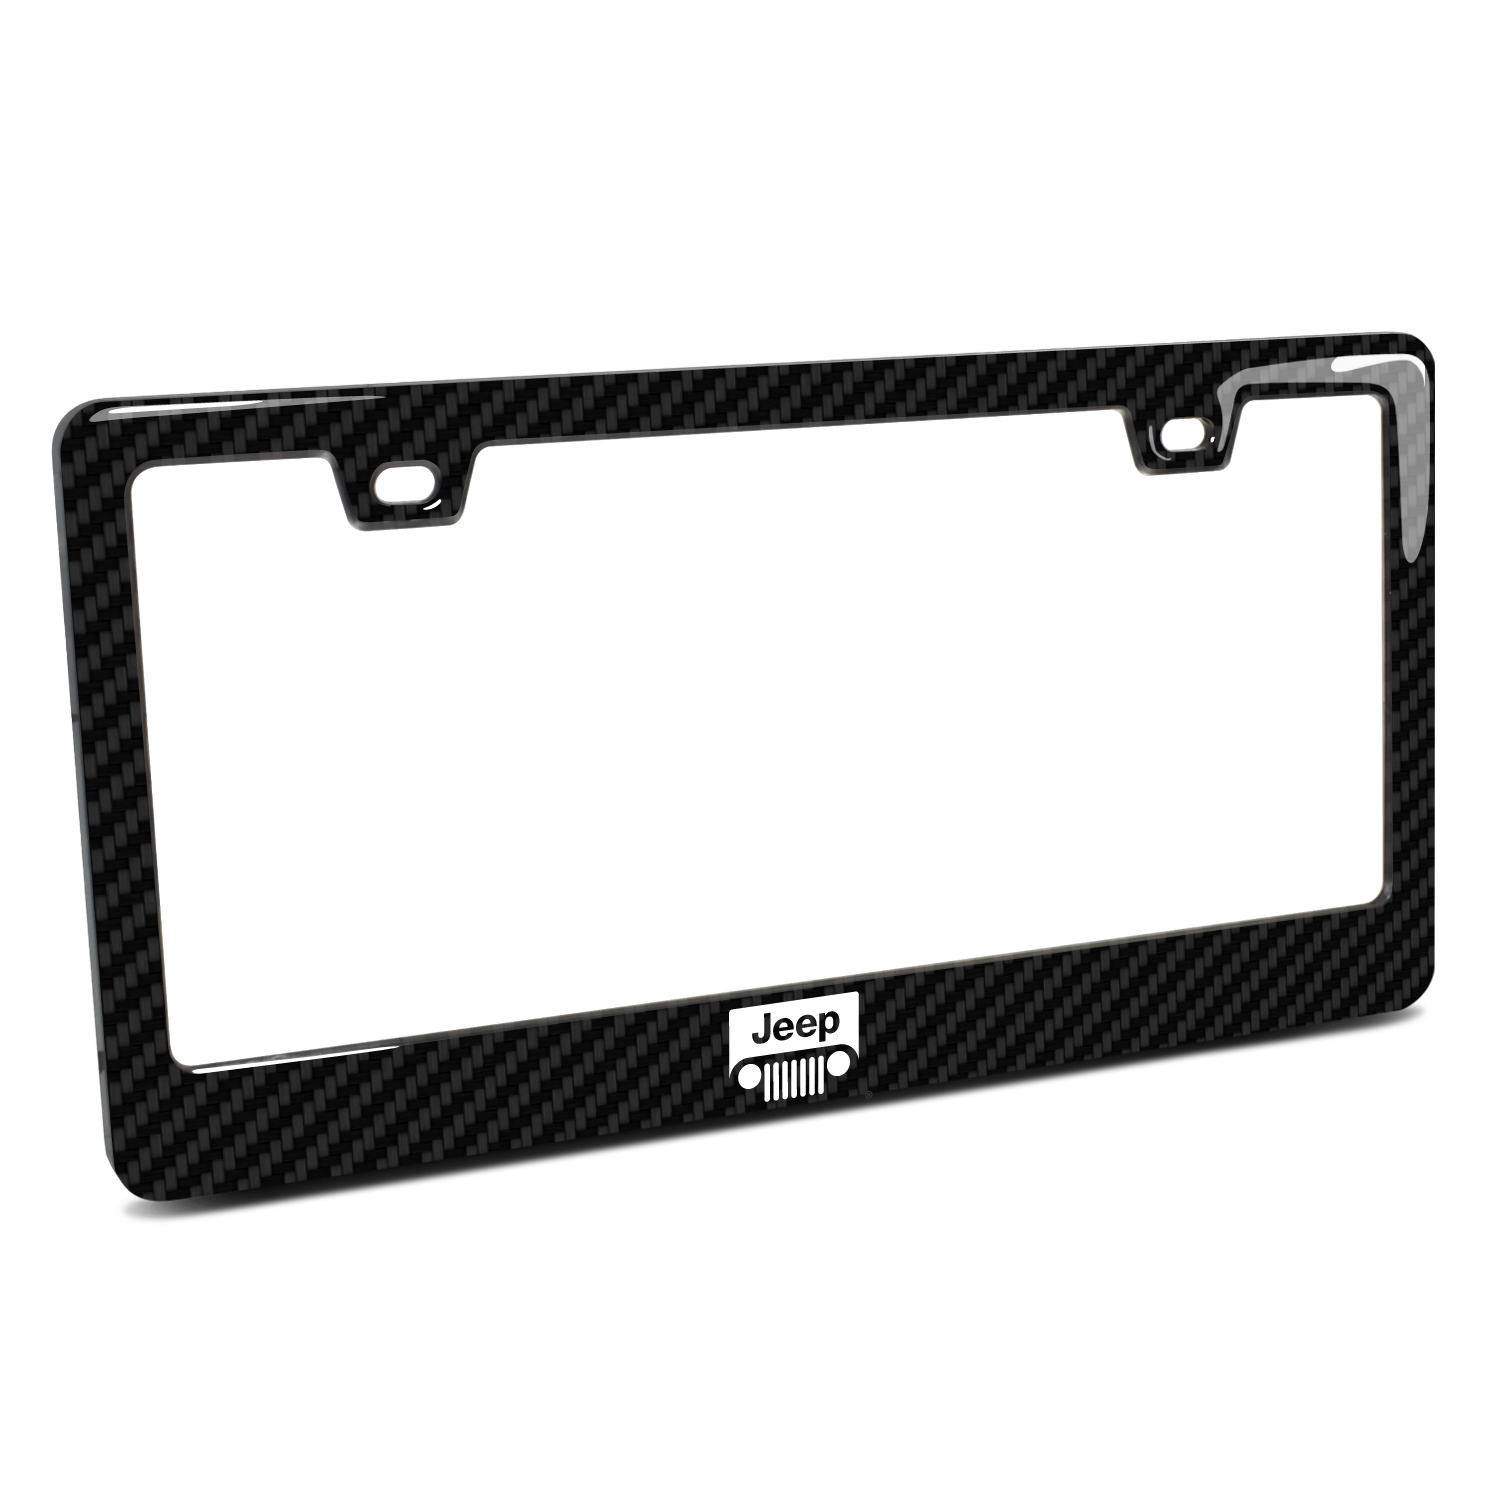 Jeep Grill Black Real 3K Carbon Fiber Finish ABS Plastic License Plate Frame